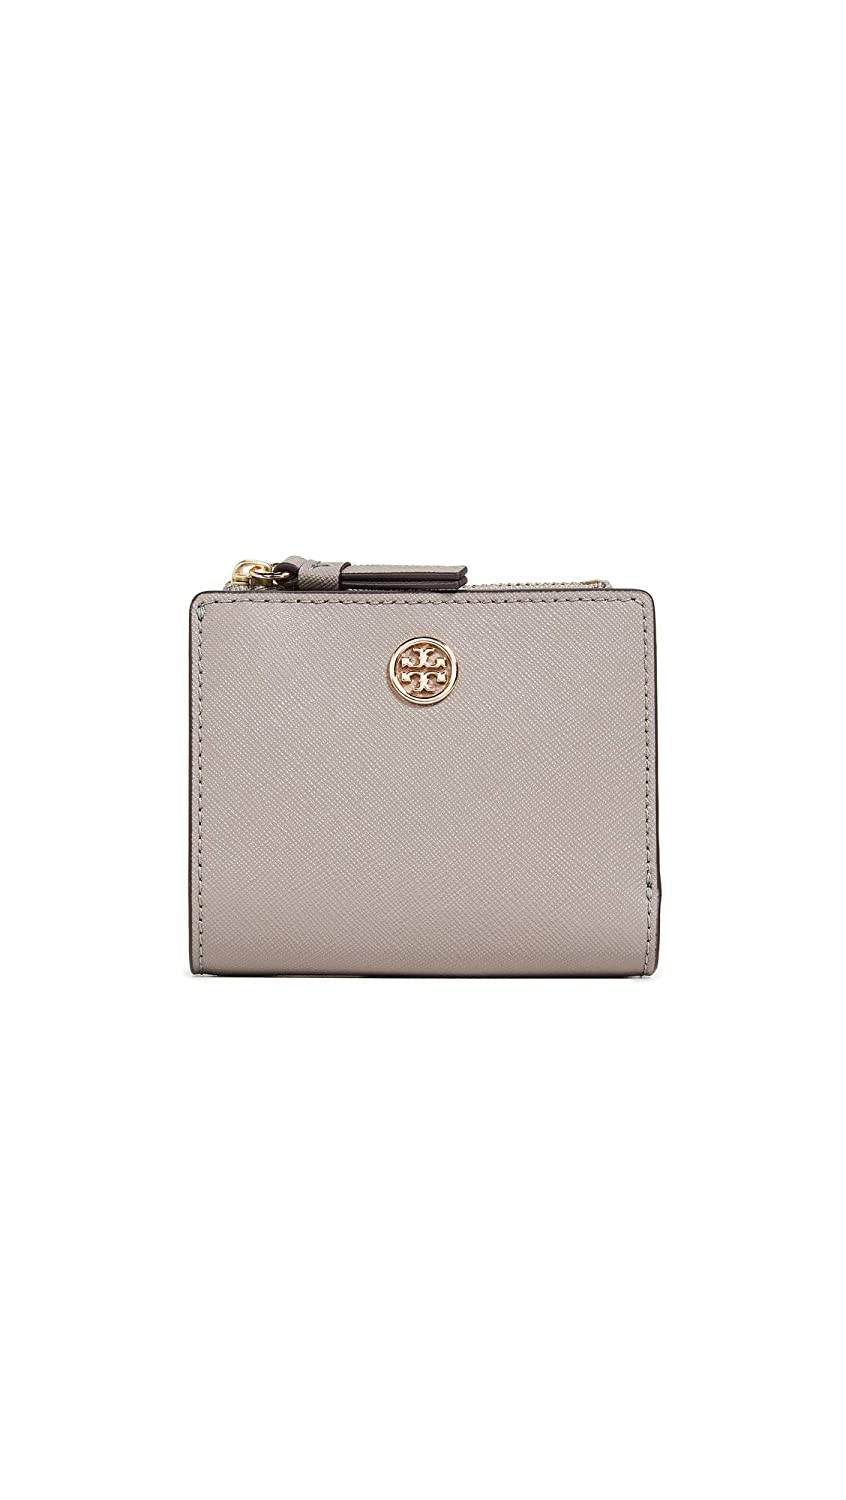 275f27eeb18d Amazon.com  Tory Burch Women s Robinson Mini Wallet